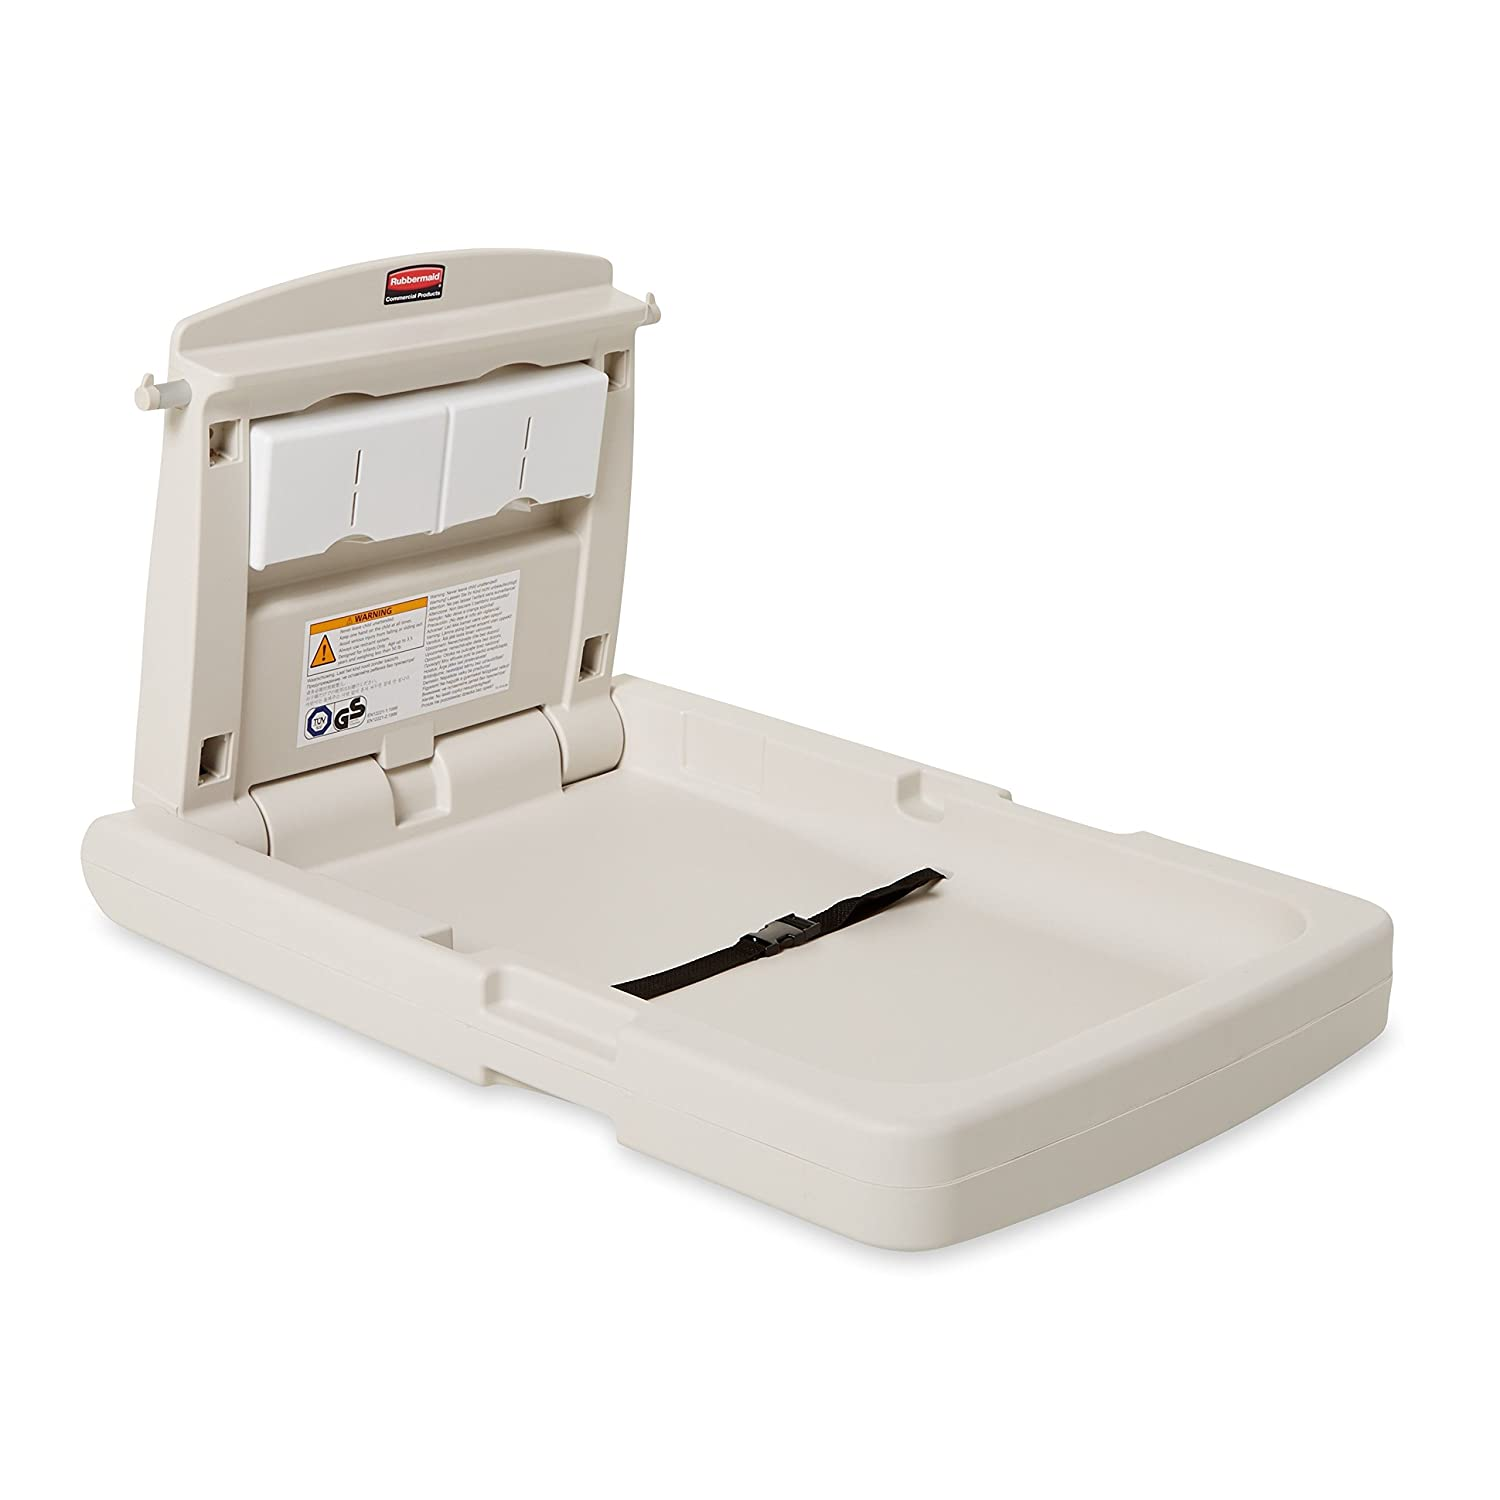 Rubbermaid Commercial Horizontal Baby Changing Station, 33.25-Inch Length x 21.5-Inch Width x 4-Inch Height, Light Platinum (FG781888LPLAT)